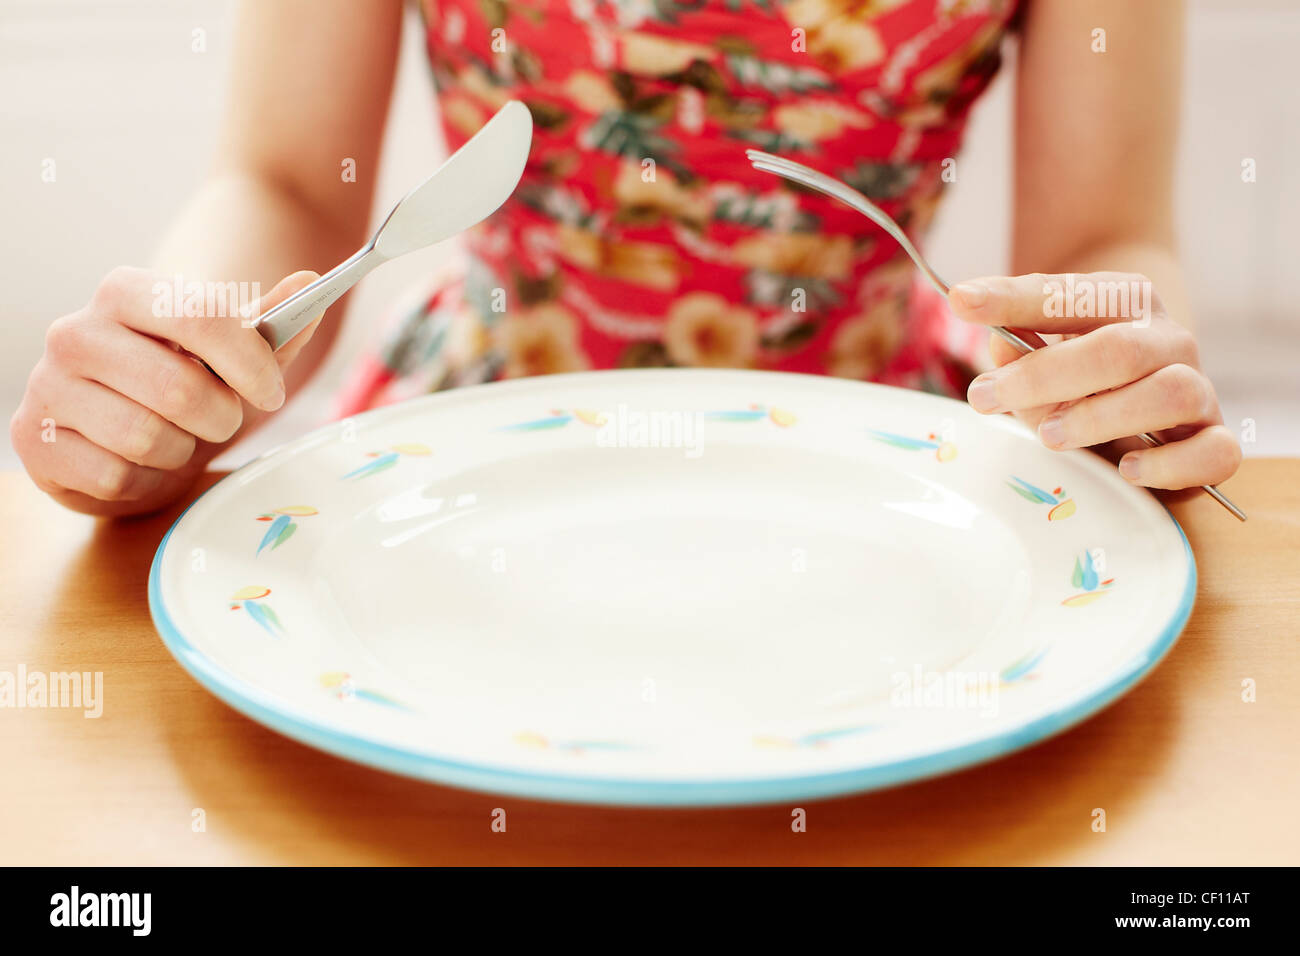 Woman with empty plate - Stock Image